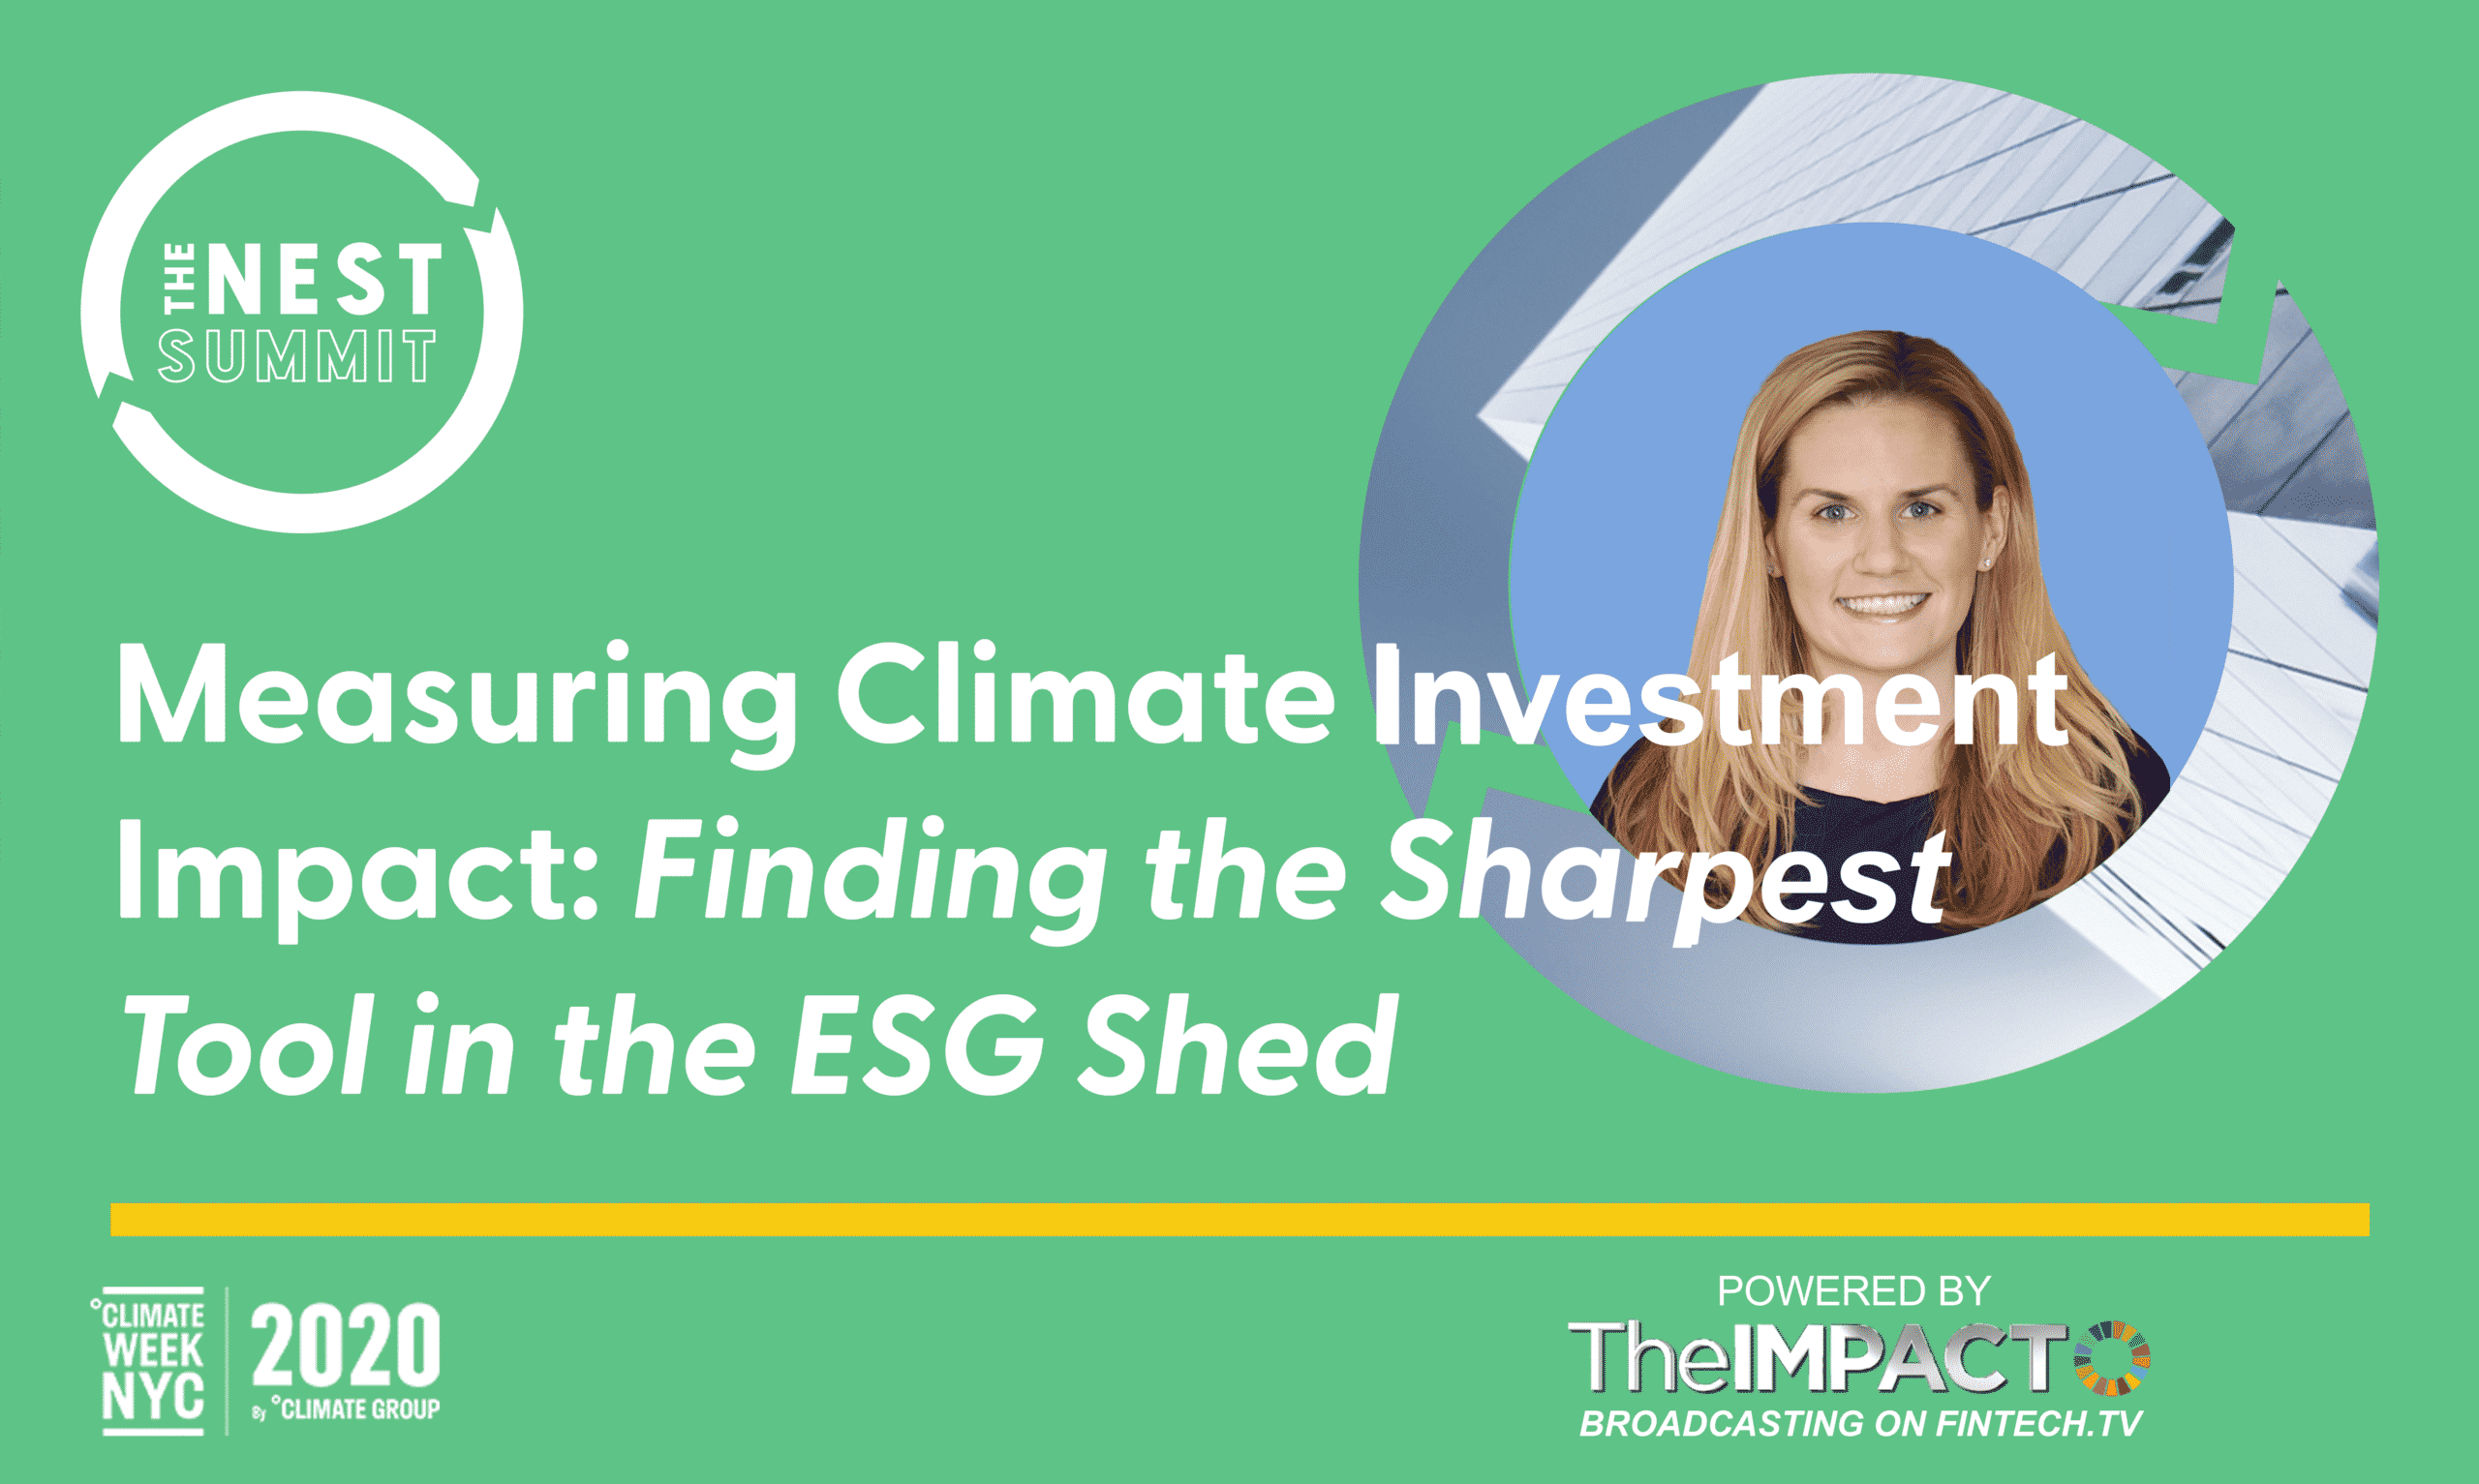 Measuring Climate Investment Impact: Finding the Sharpest Tool in the ESG Shed